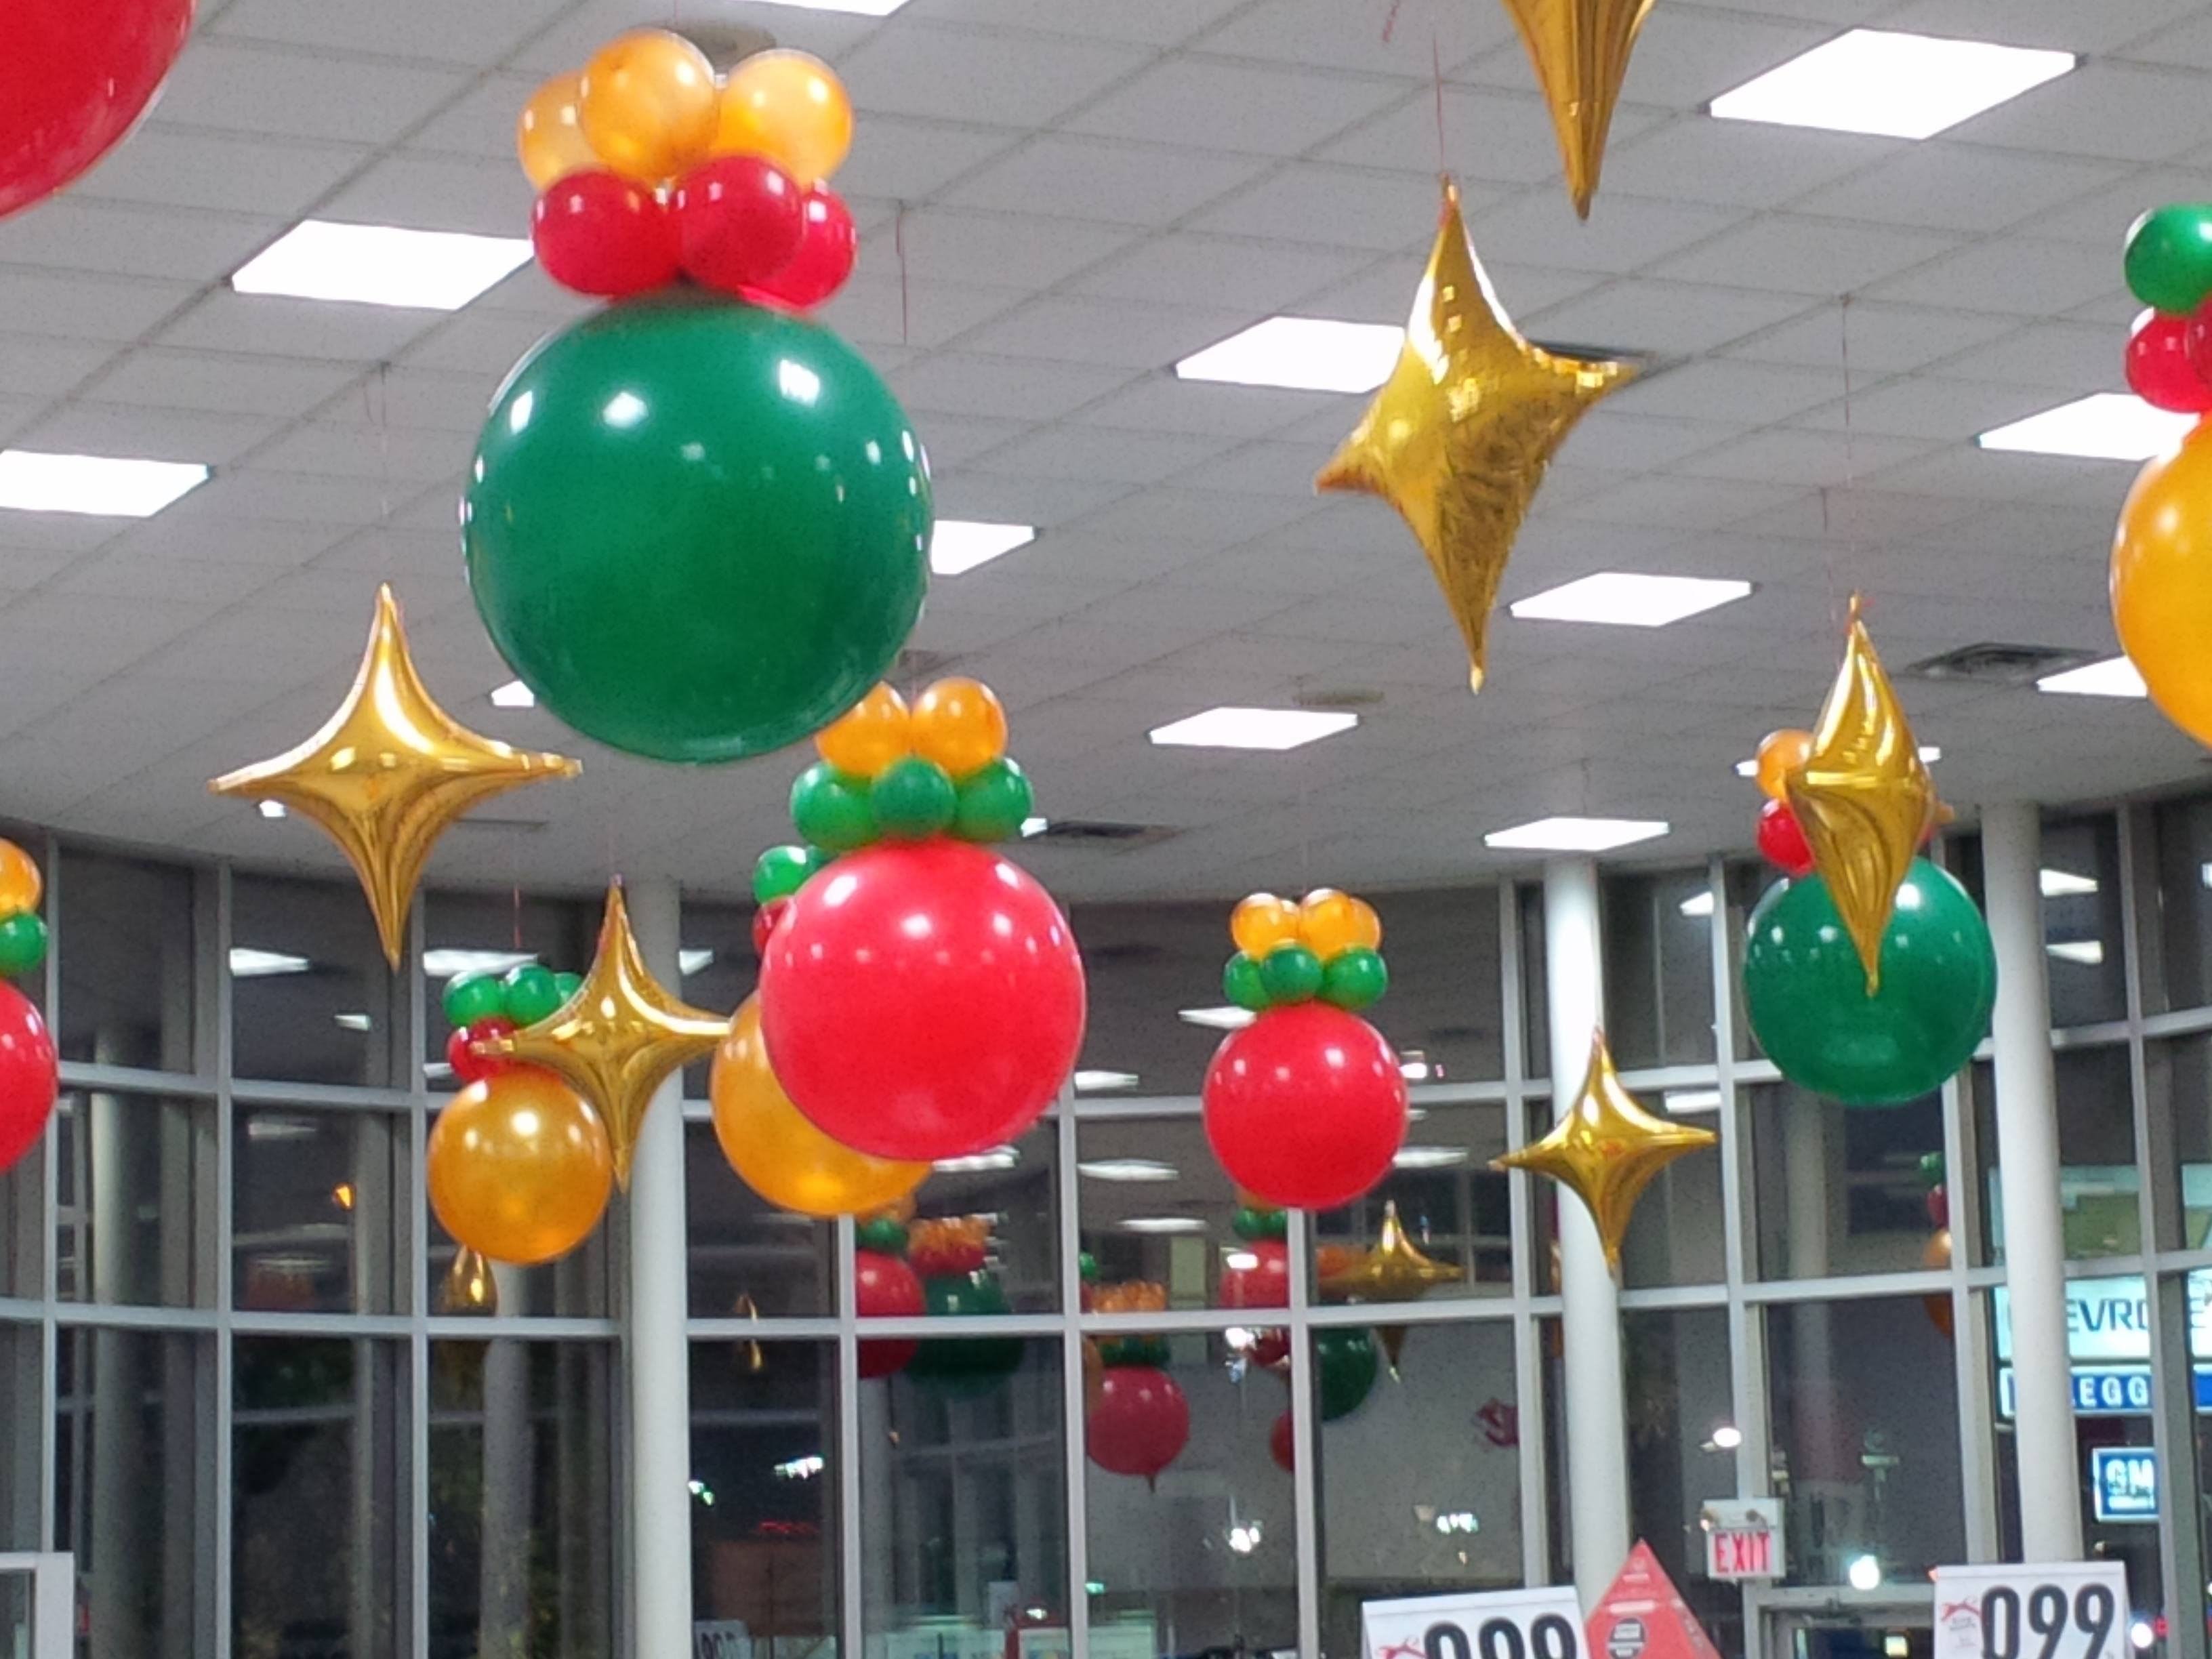 Balloon Ceiling Party Decorations Celebrations Tops In